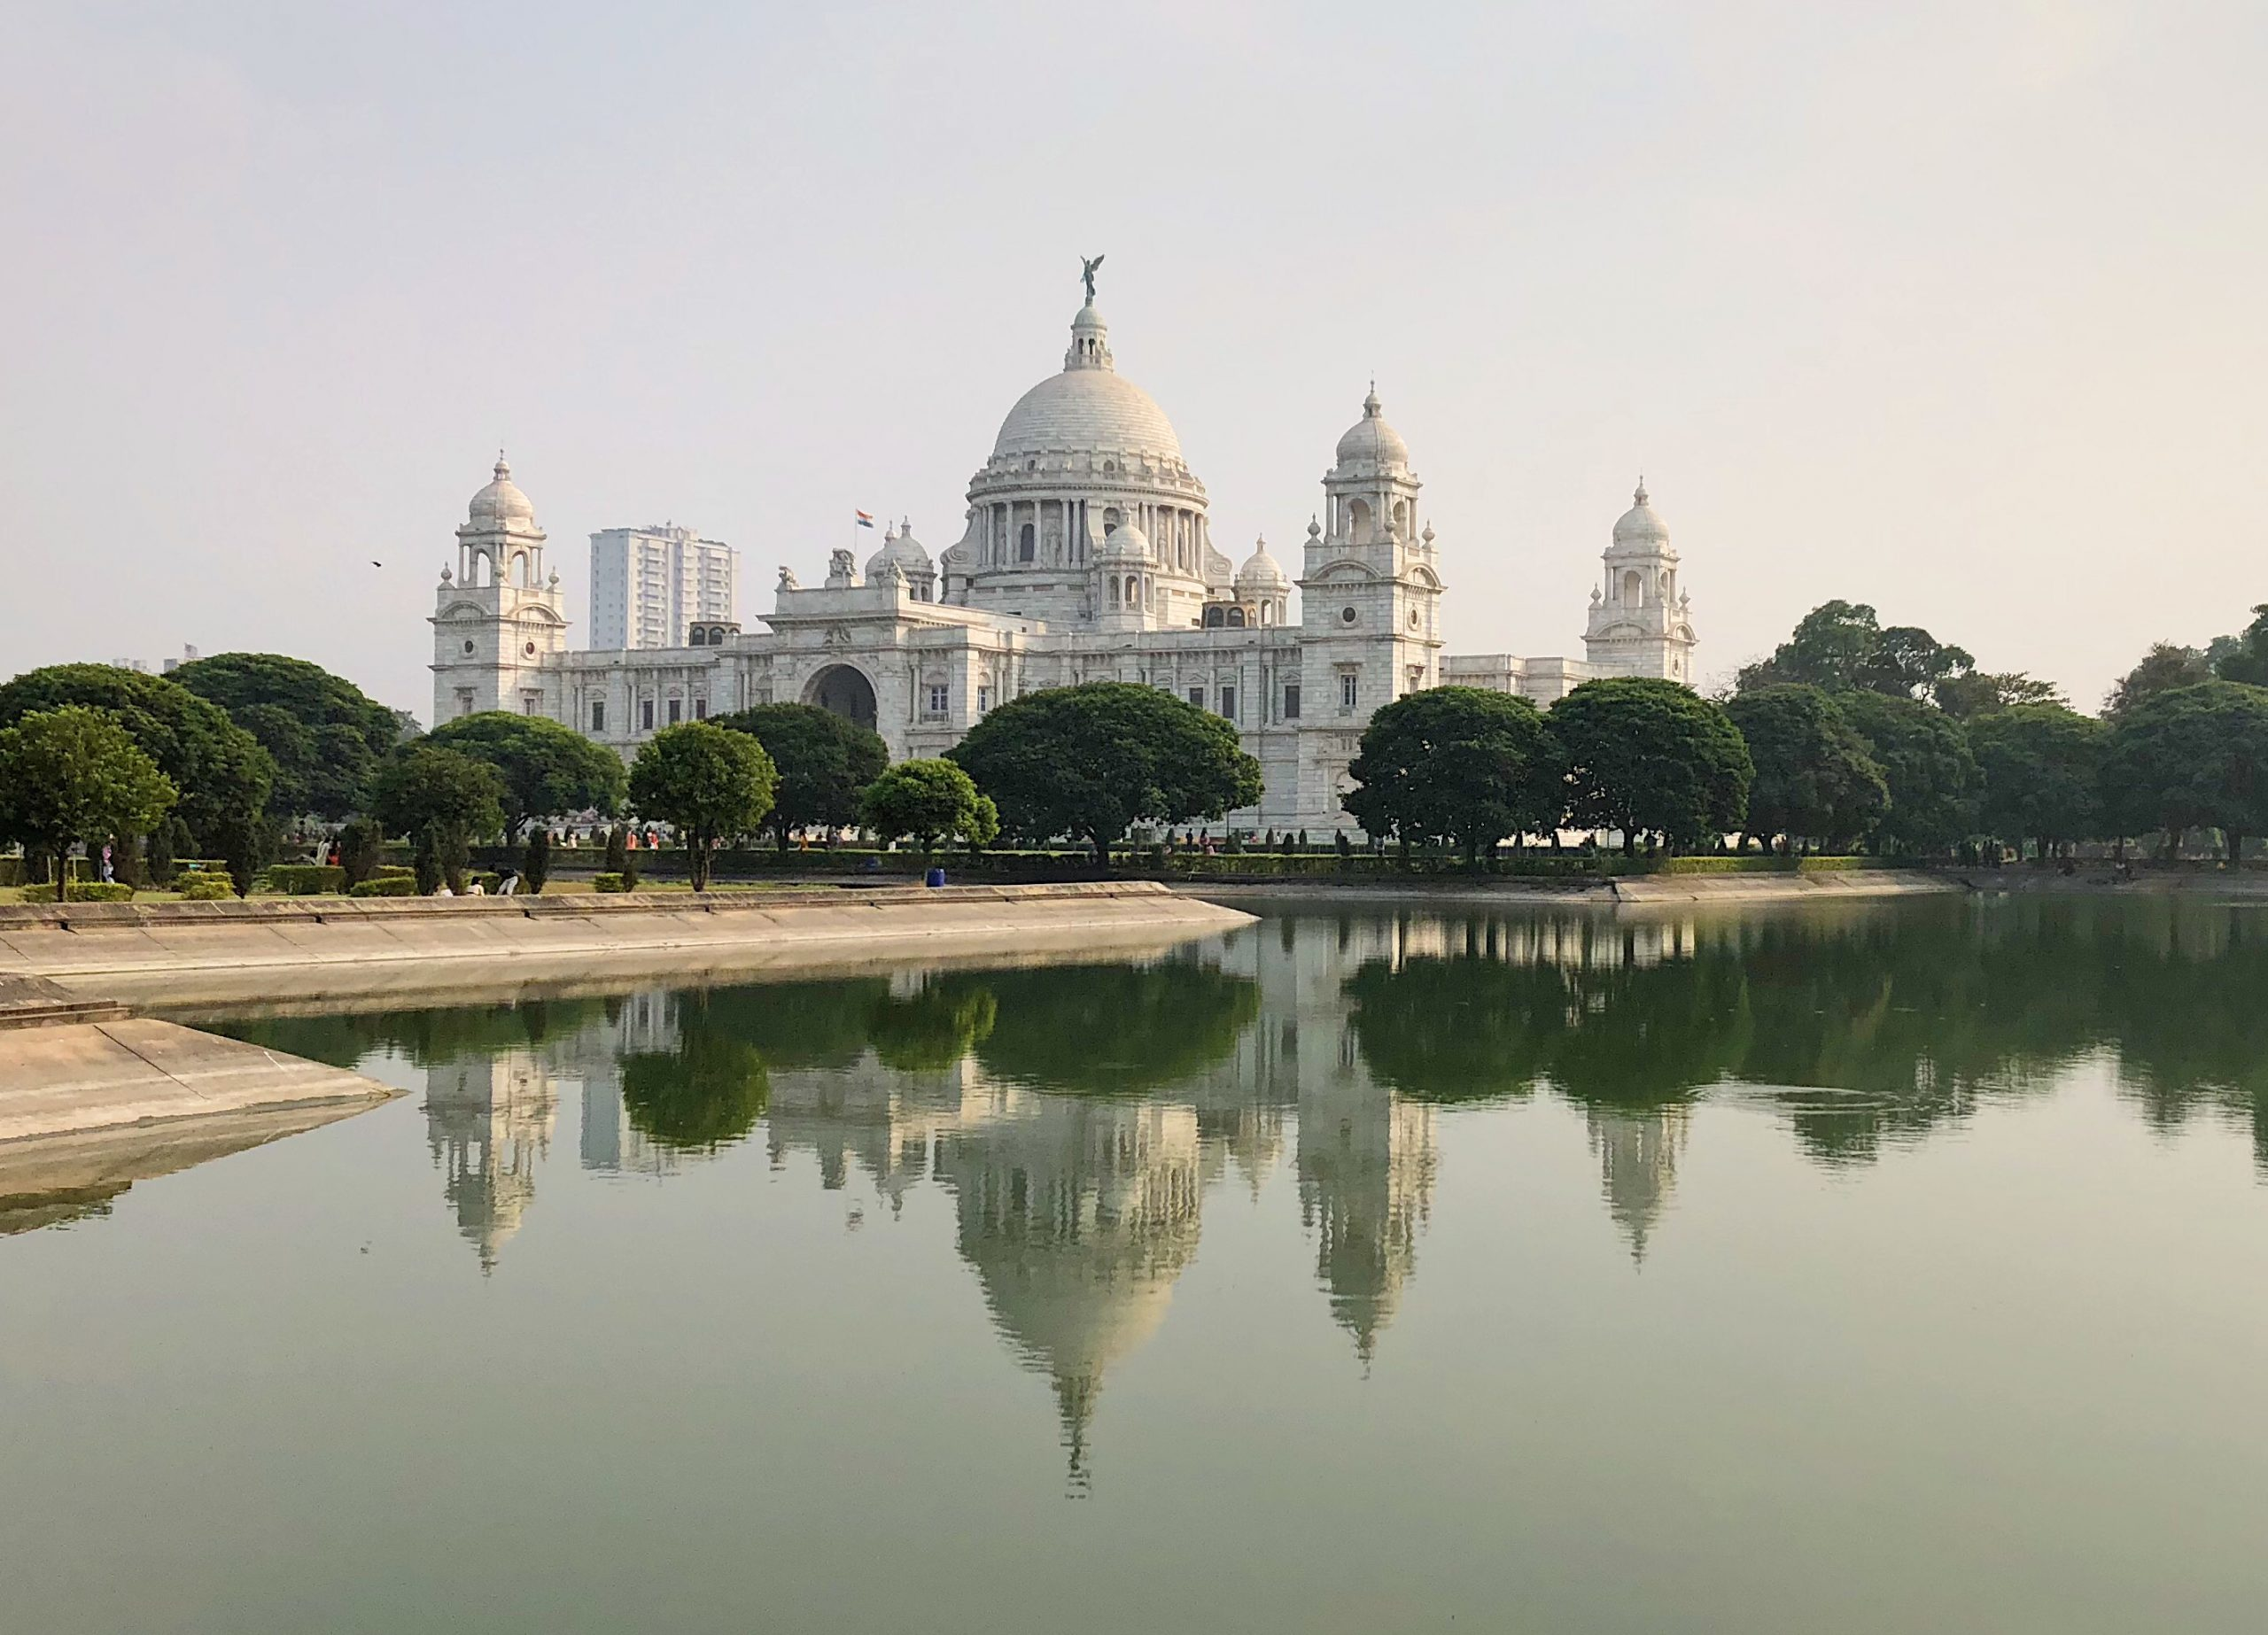 Exploring India: Interesting Places to Visit in Kolkata via @outandacross